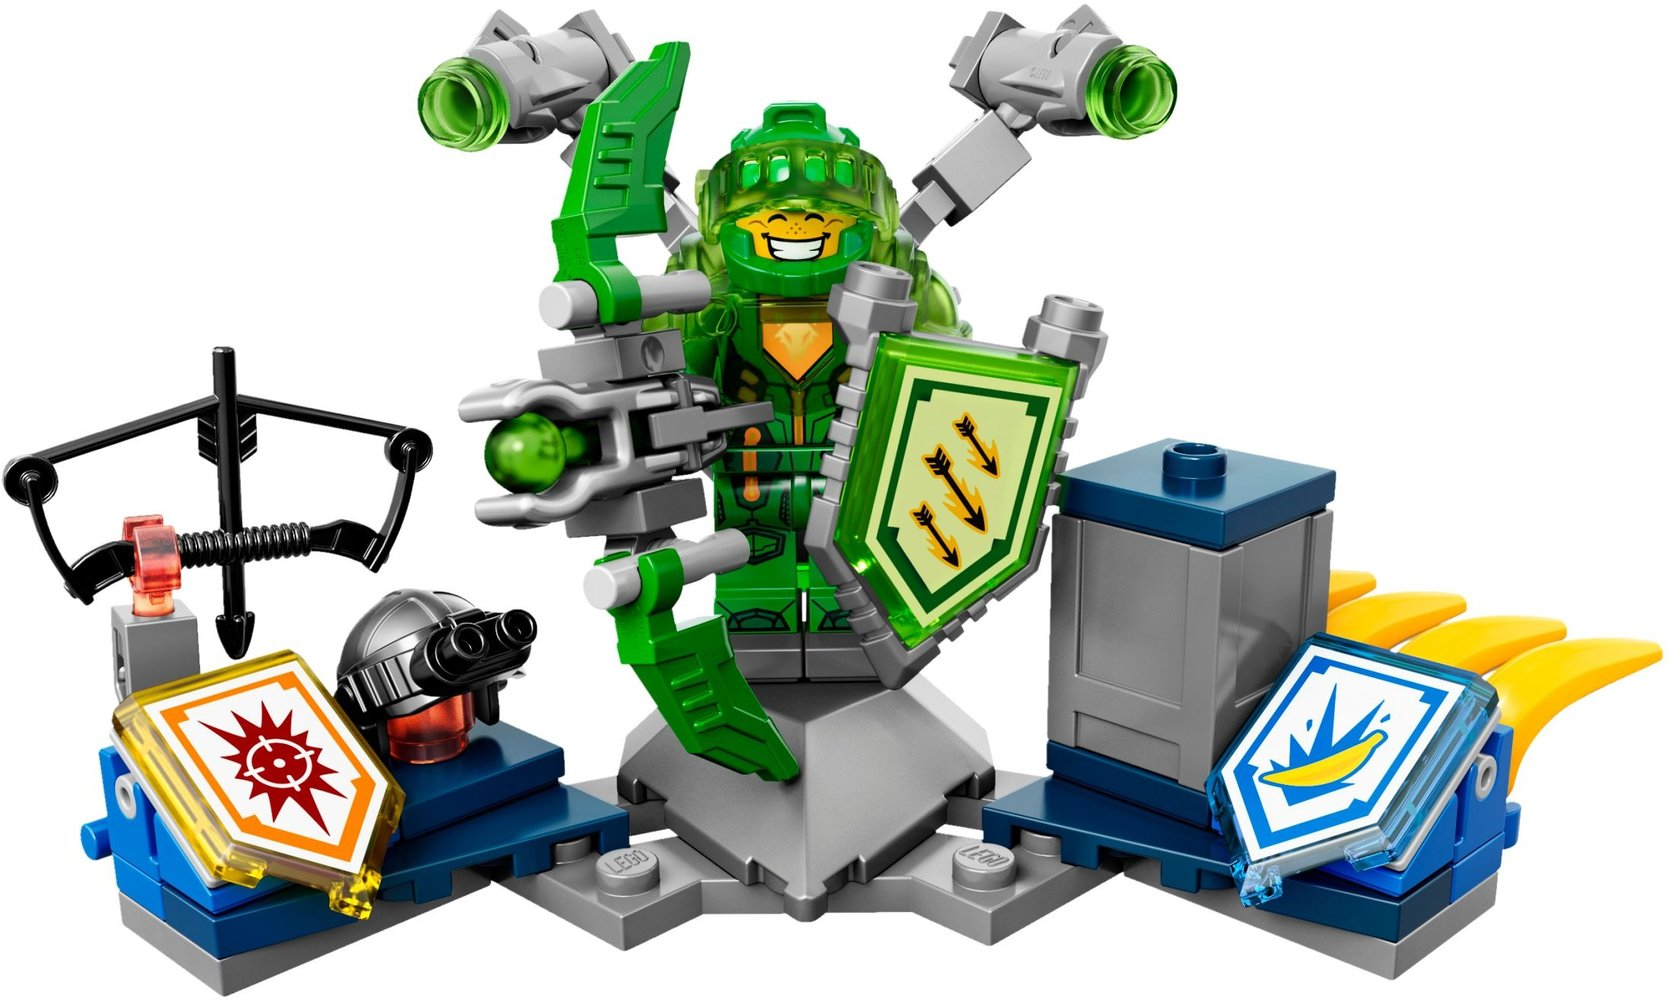 lego nexo knights 70332 pas cher aaron l ultime chevalier